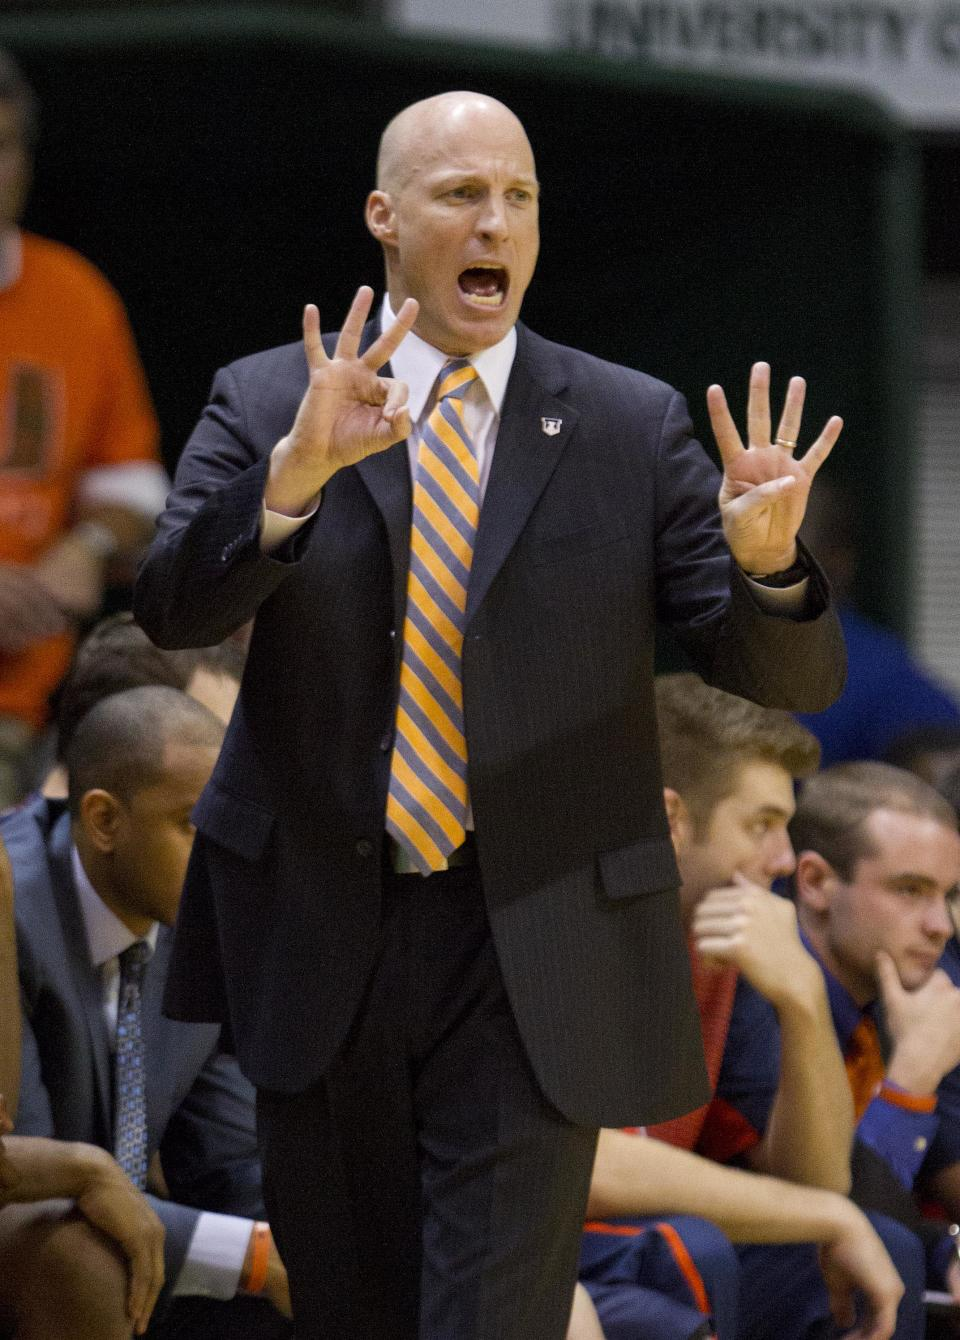 Illinois head coach John Groce calls out a play during the first half of an NCAA college basketball game against Miami, Tuesday, Dec. 2, 2014 in Coral Gables, Fla. (AP Photo/Wilfredo Lee)